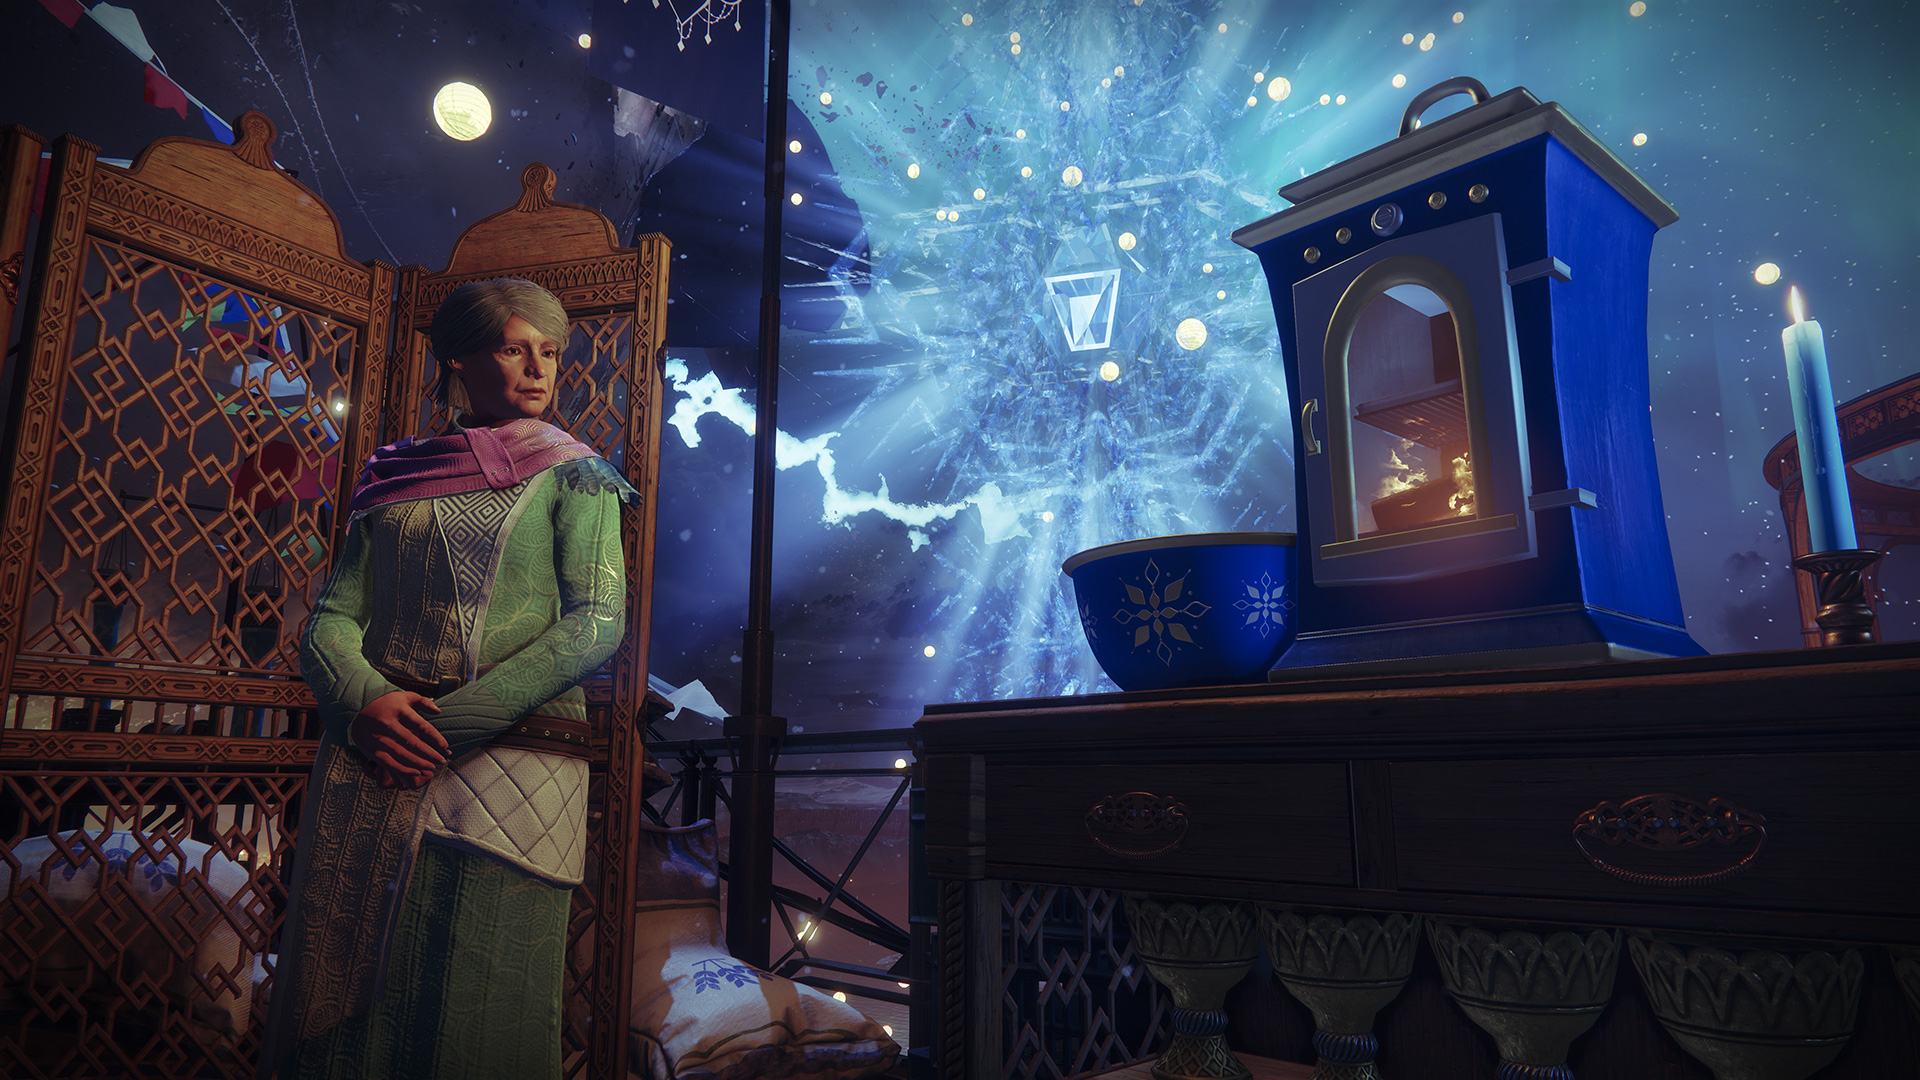 Celebrate Destiny 2 Dawning 2018 and ring in Christmas with an awesome sleigh